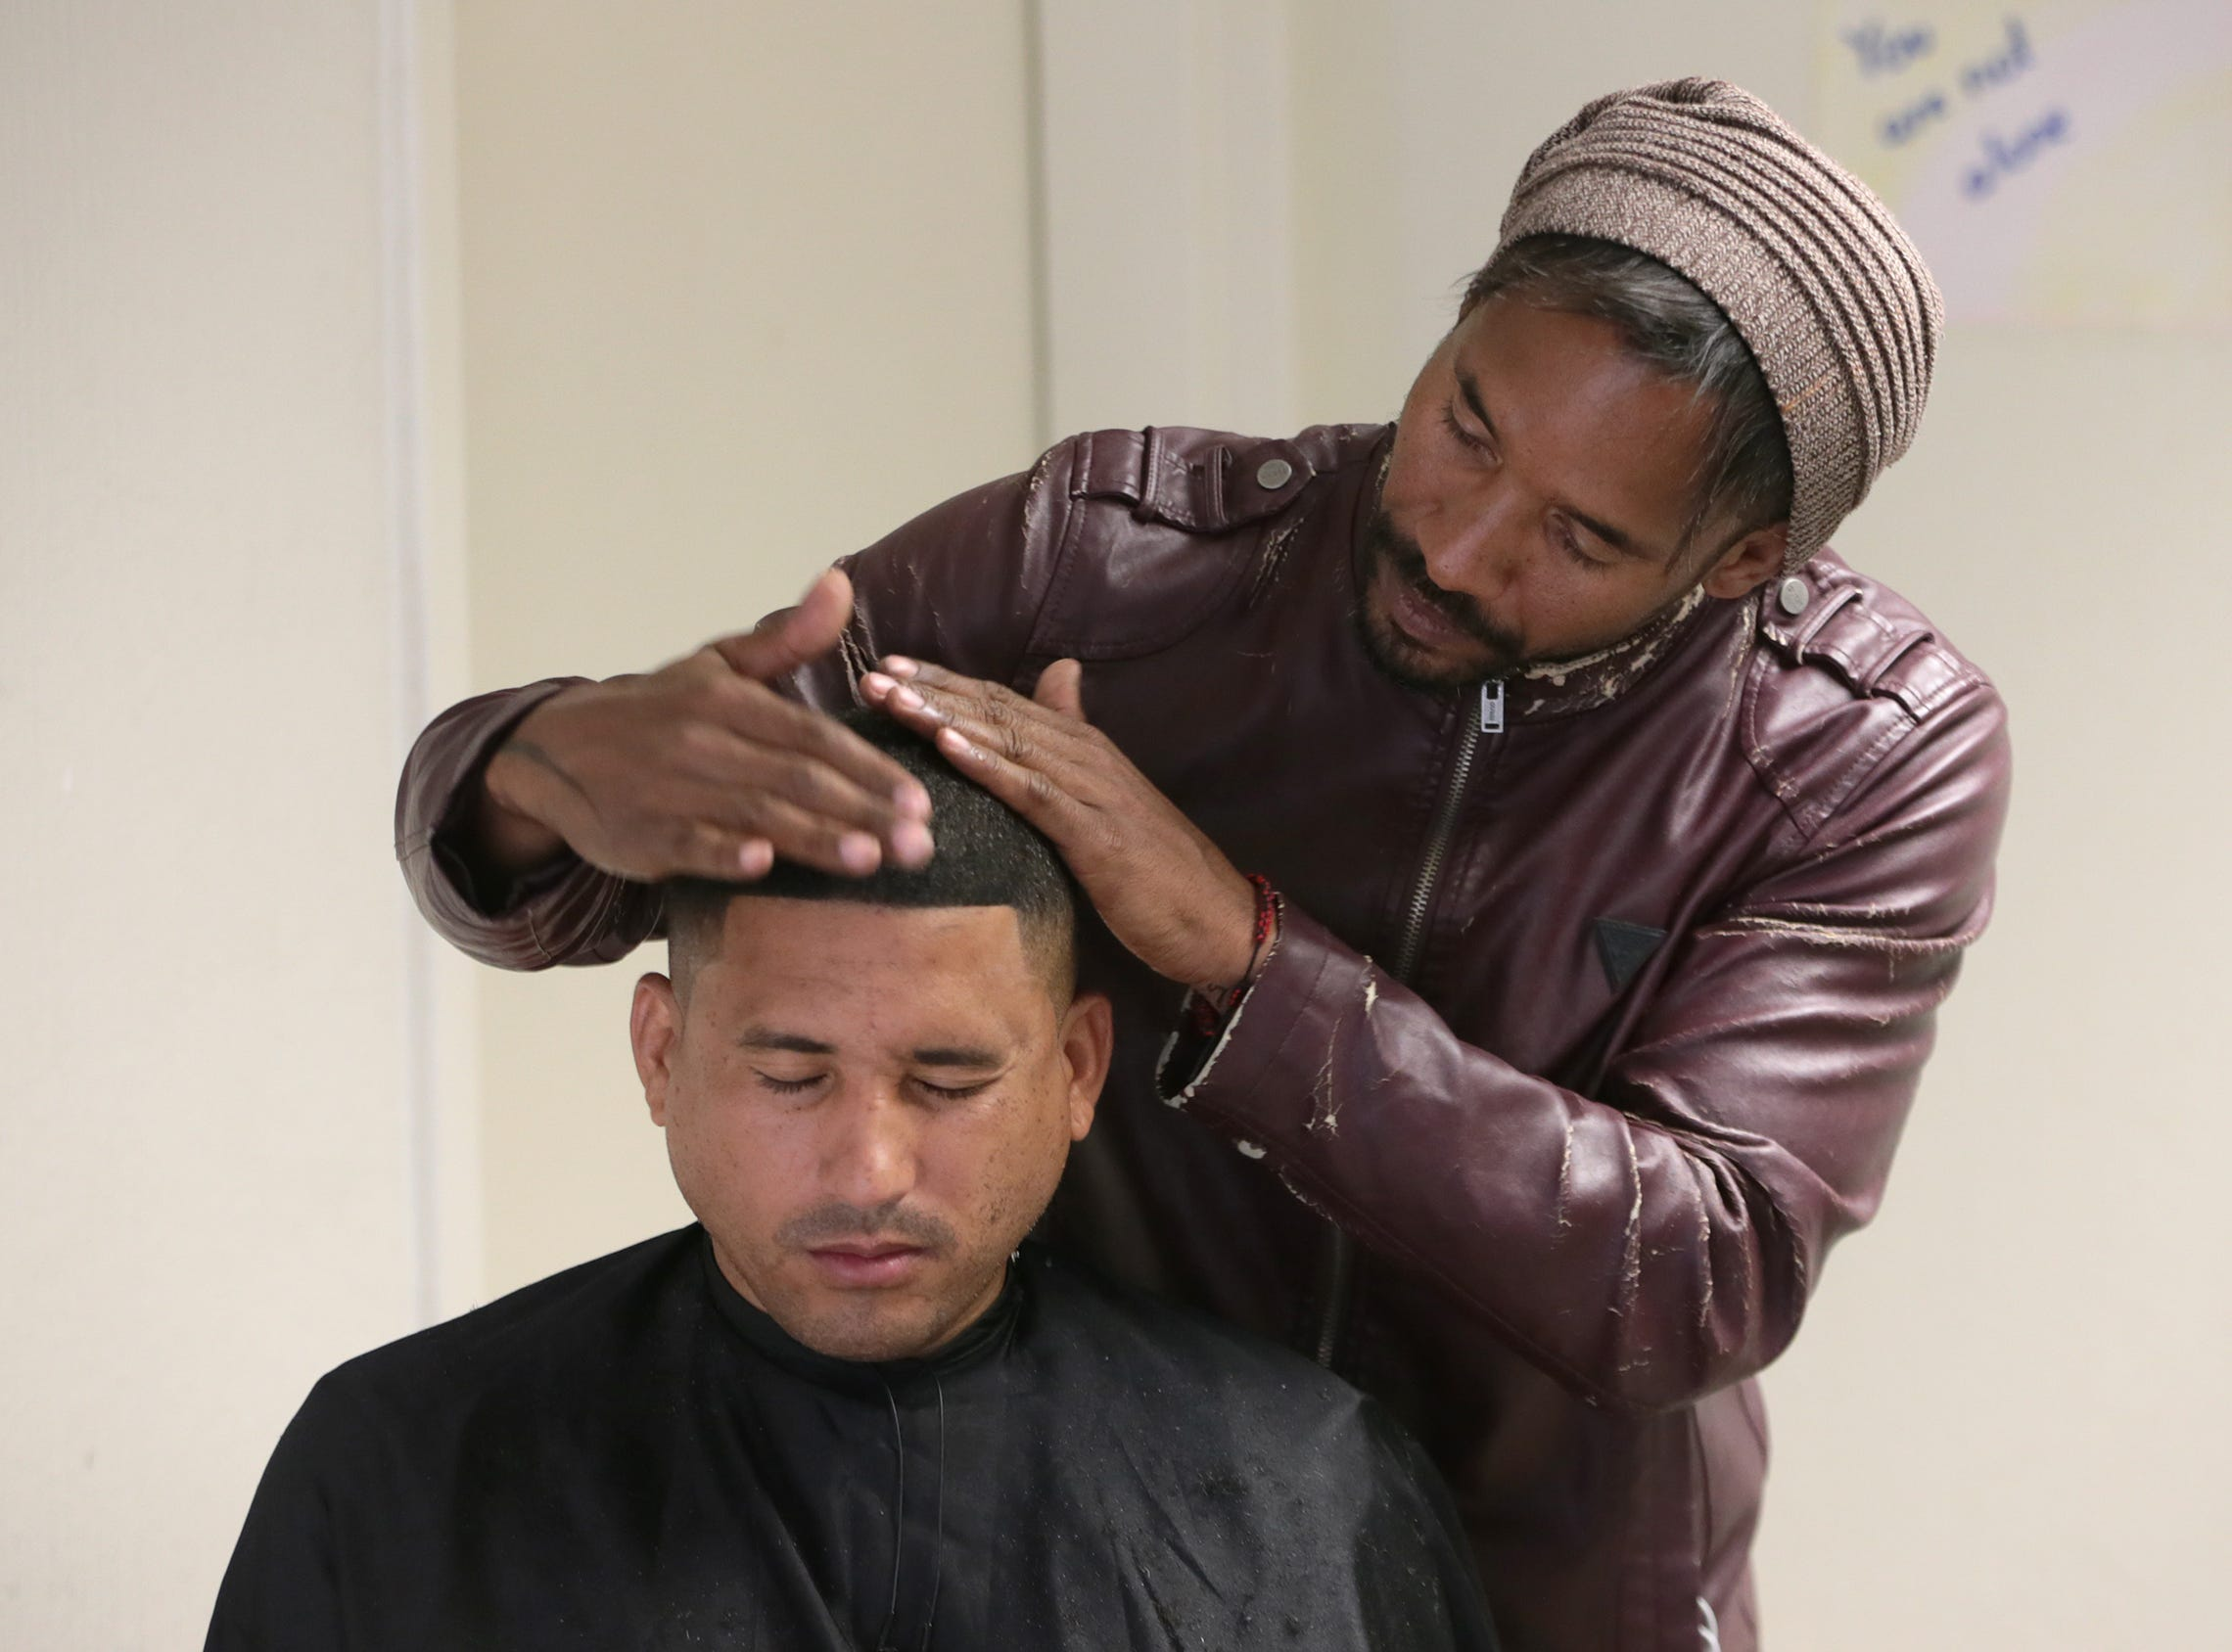 Cuban migrant Osiris, a barber by trade, cuts hair of his fellow Cubans as he awaits entry into the United States. Over 250 Cuban migrants, among others, are sheltering at the Colegio de Bachilleres in Juarez as they await their number to be called.